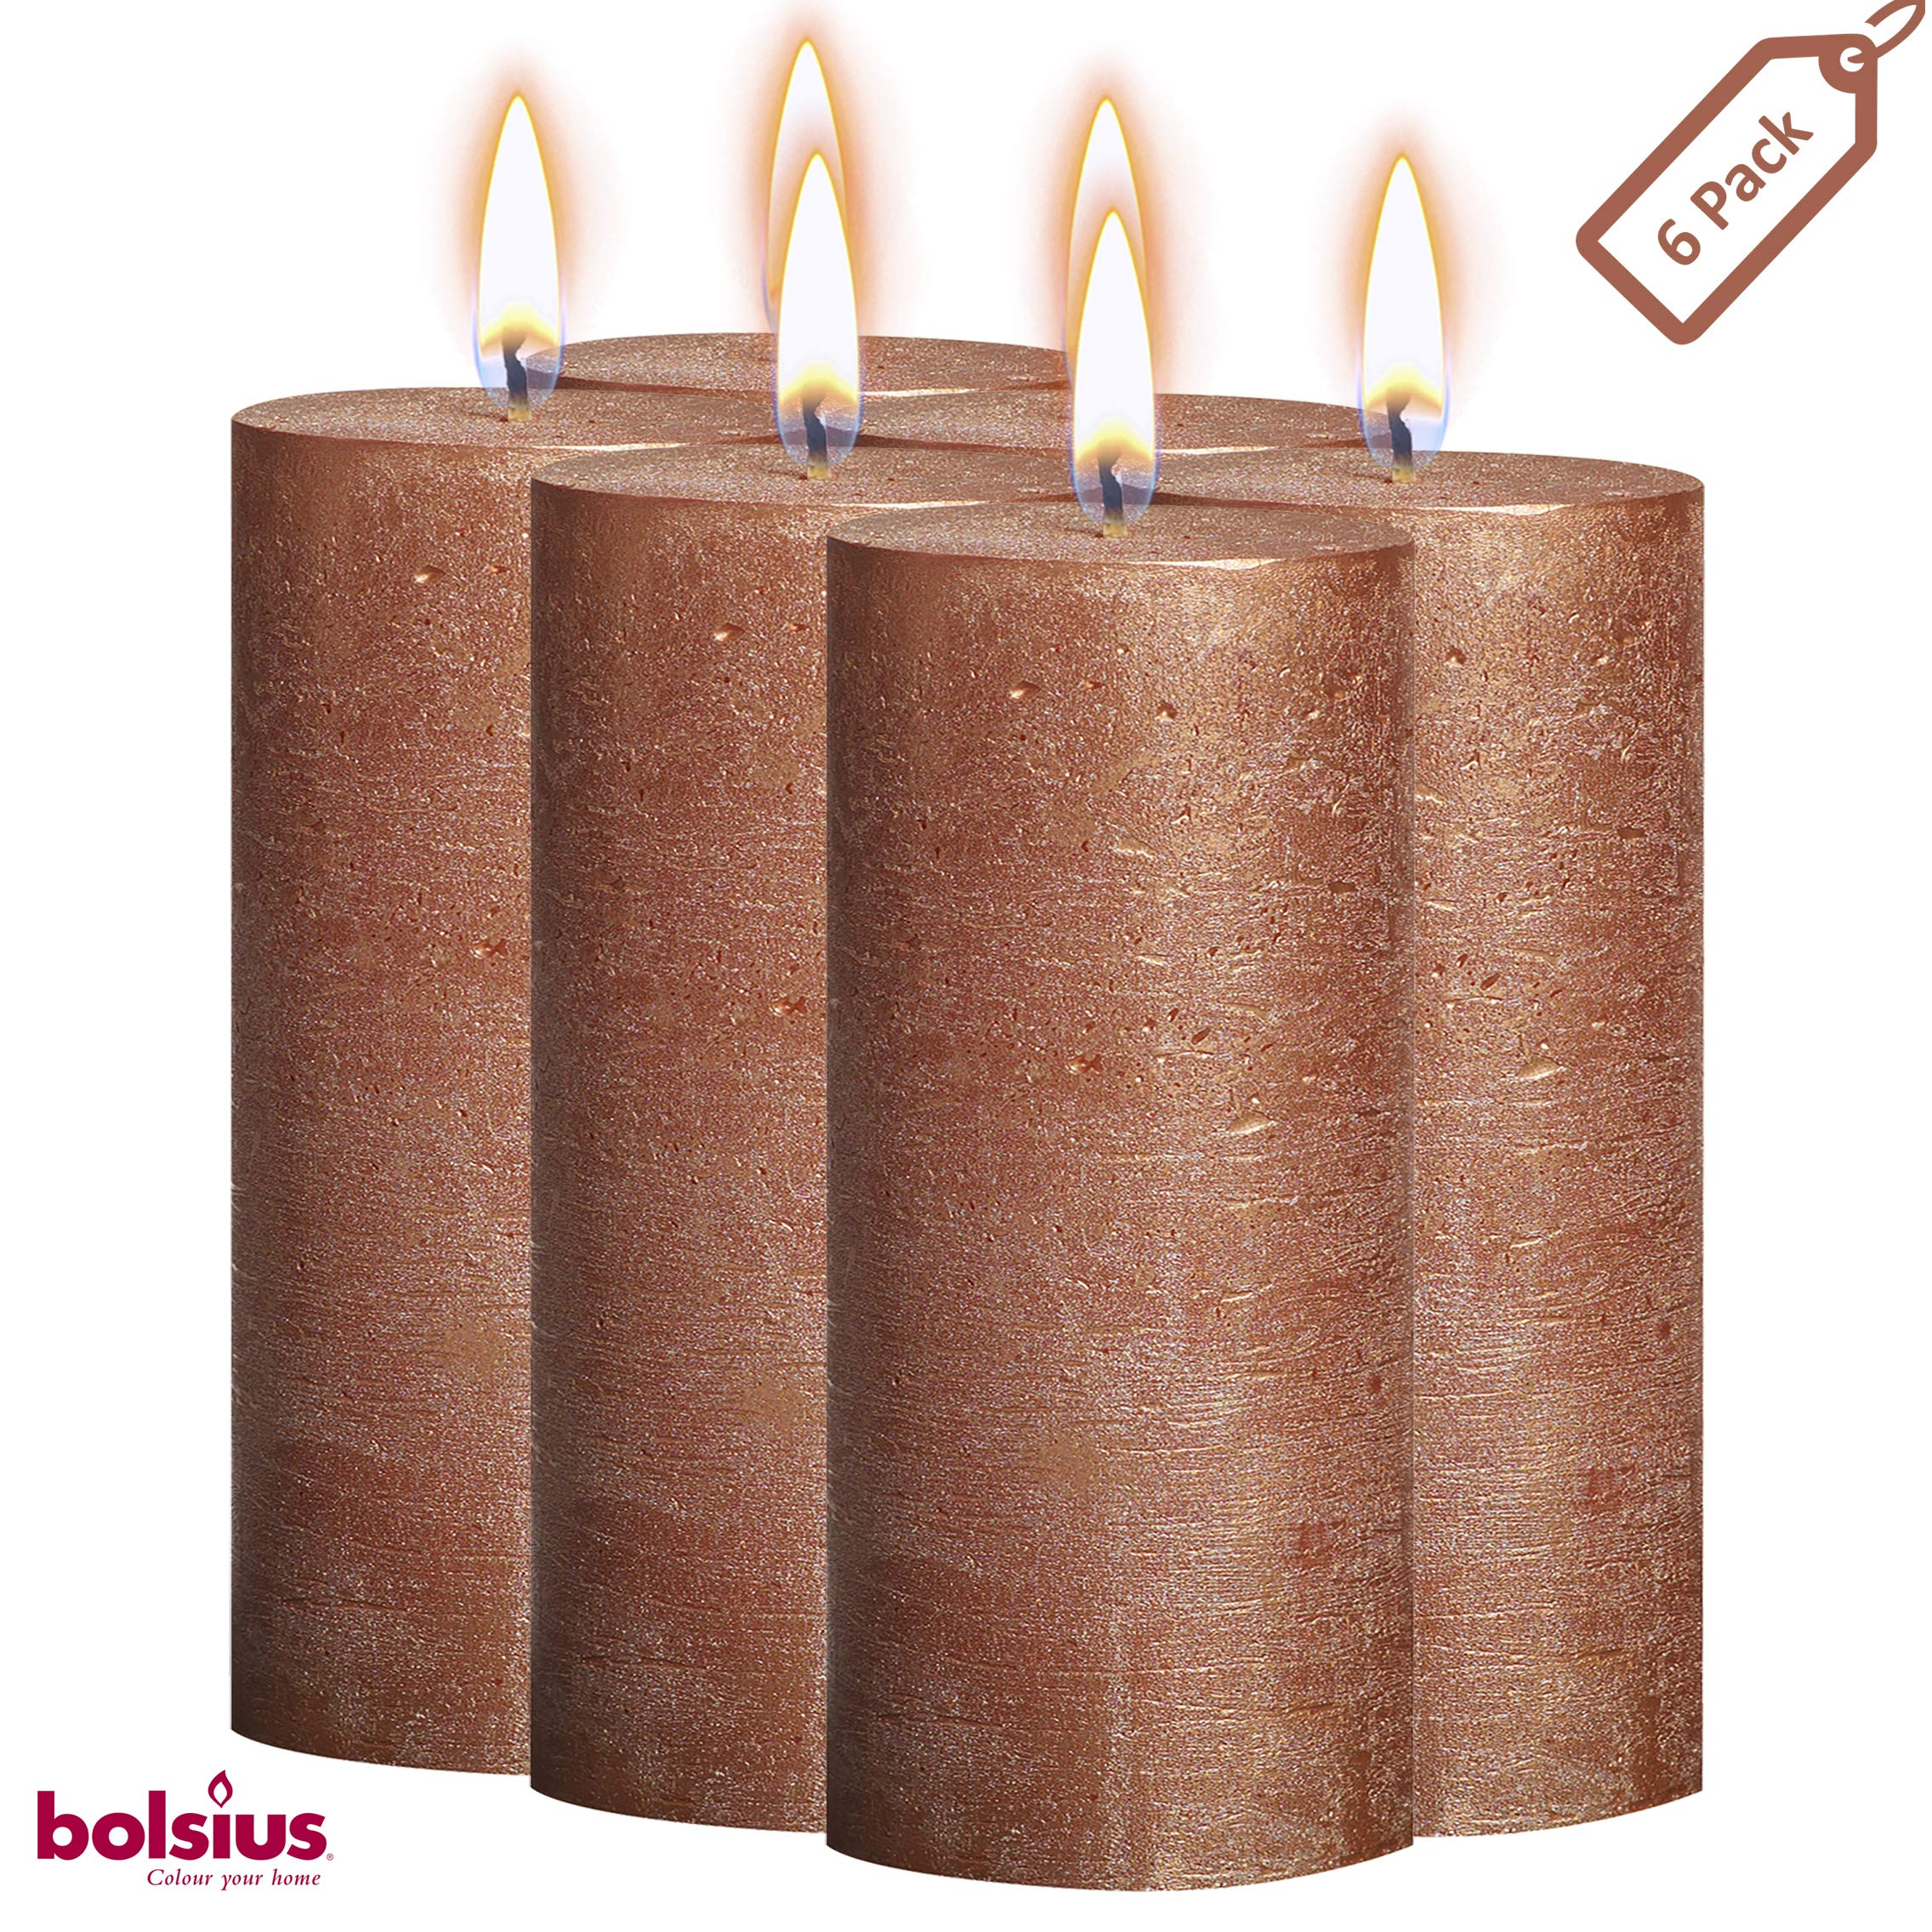 BOLSIUS Rustic Full Metallic Copper Candles - Set of 6 Unscented Pillar Candles - Copper Candles with a Full Metallic Coat - Slow Burning - Perfect Décor Candle - 190/68m 7.5X 2.75 Inches by BOLSIUS